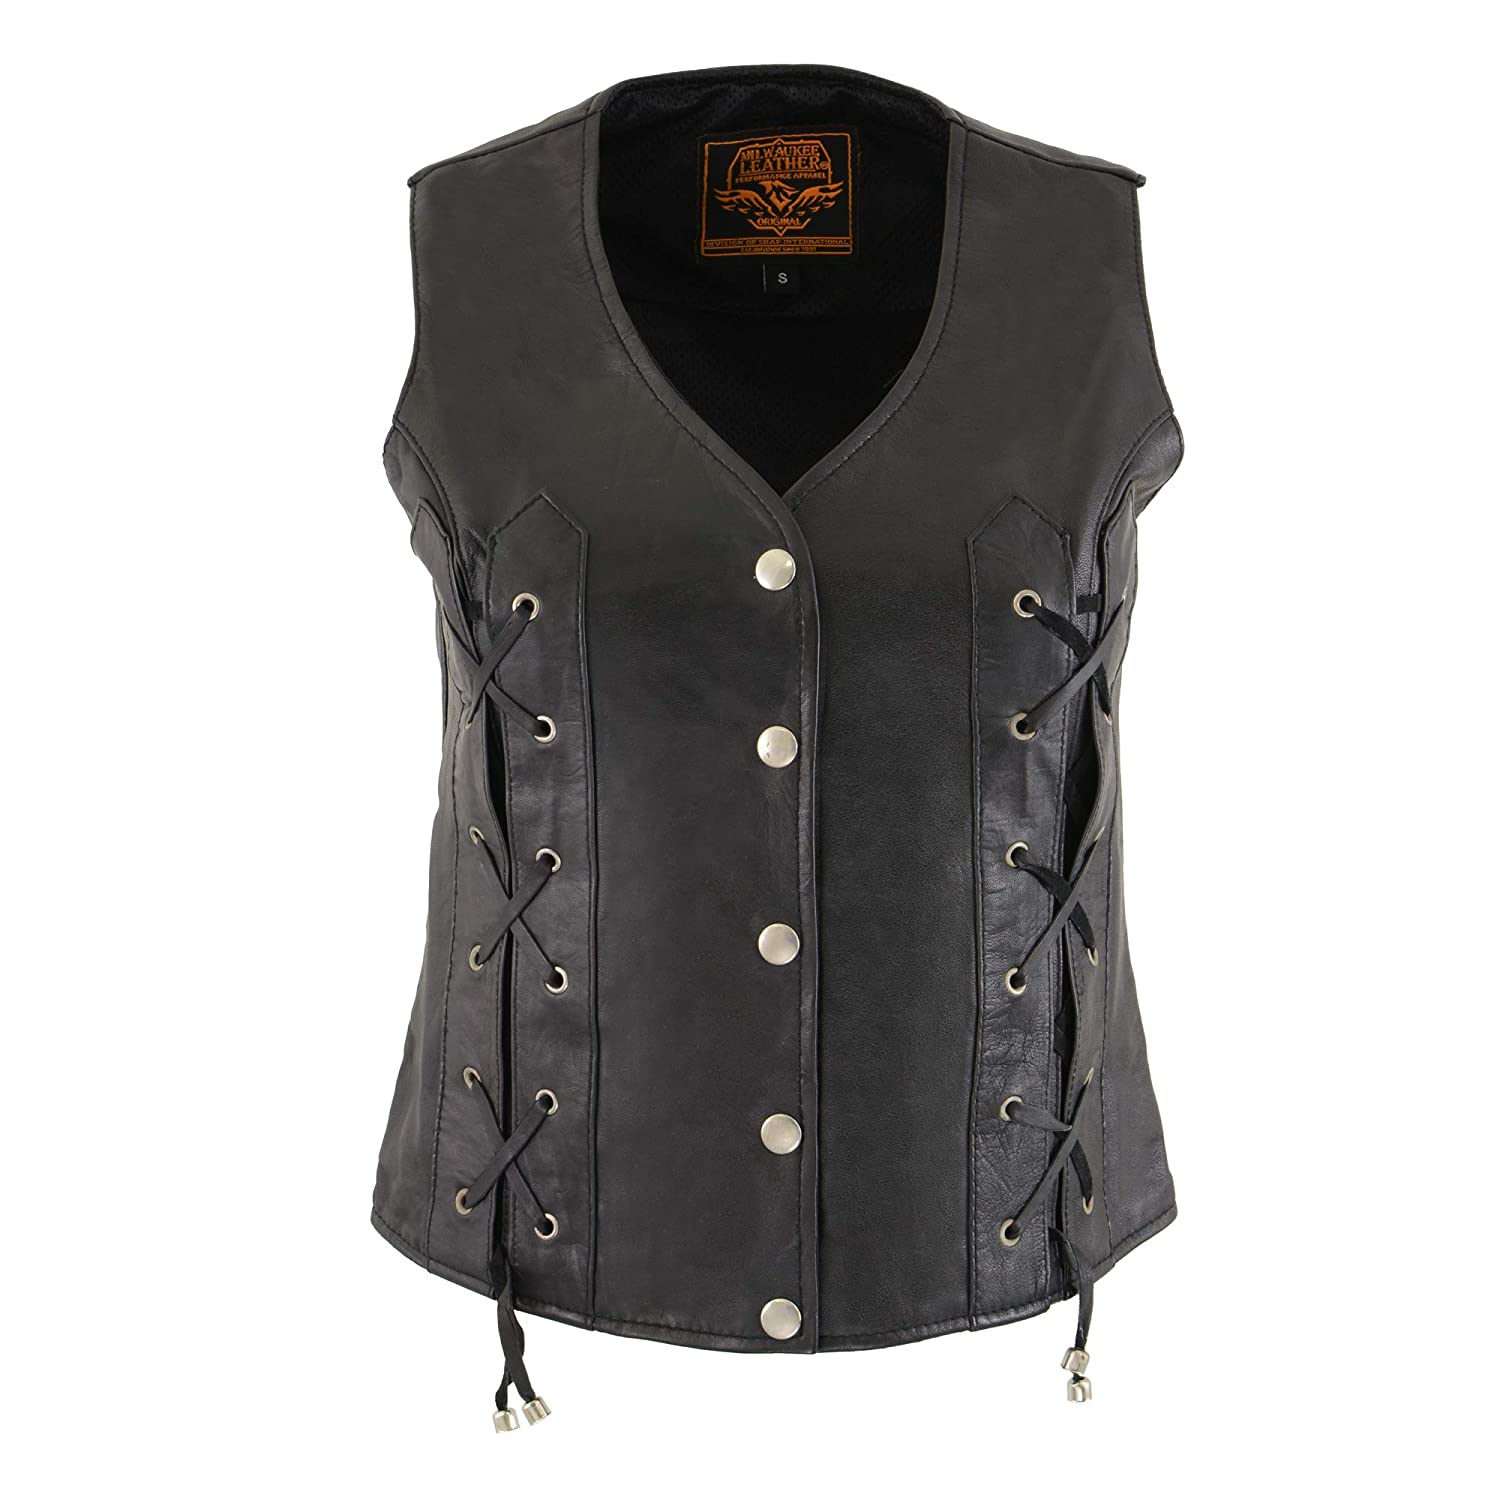 LEATHER KING Womens Snap and Lace Front Vest Black, 5X-Large